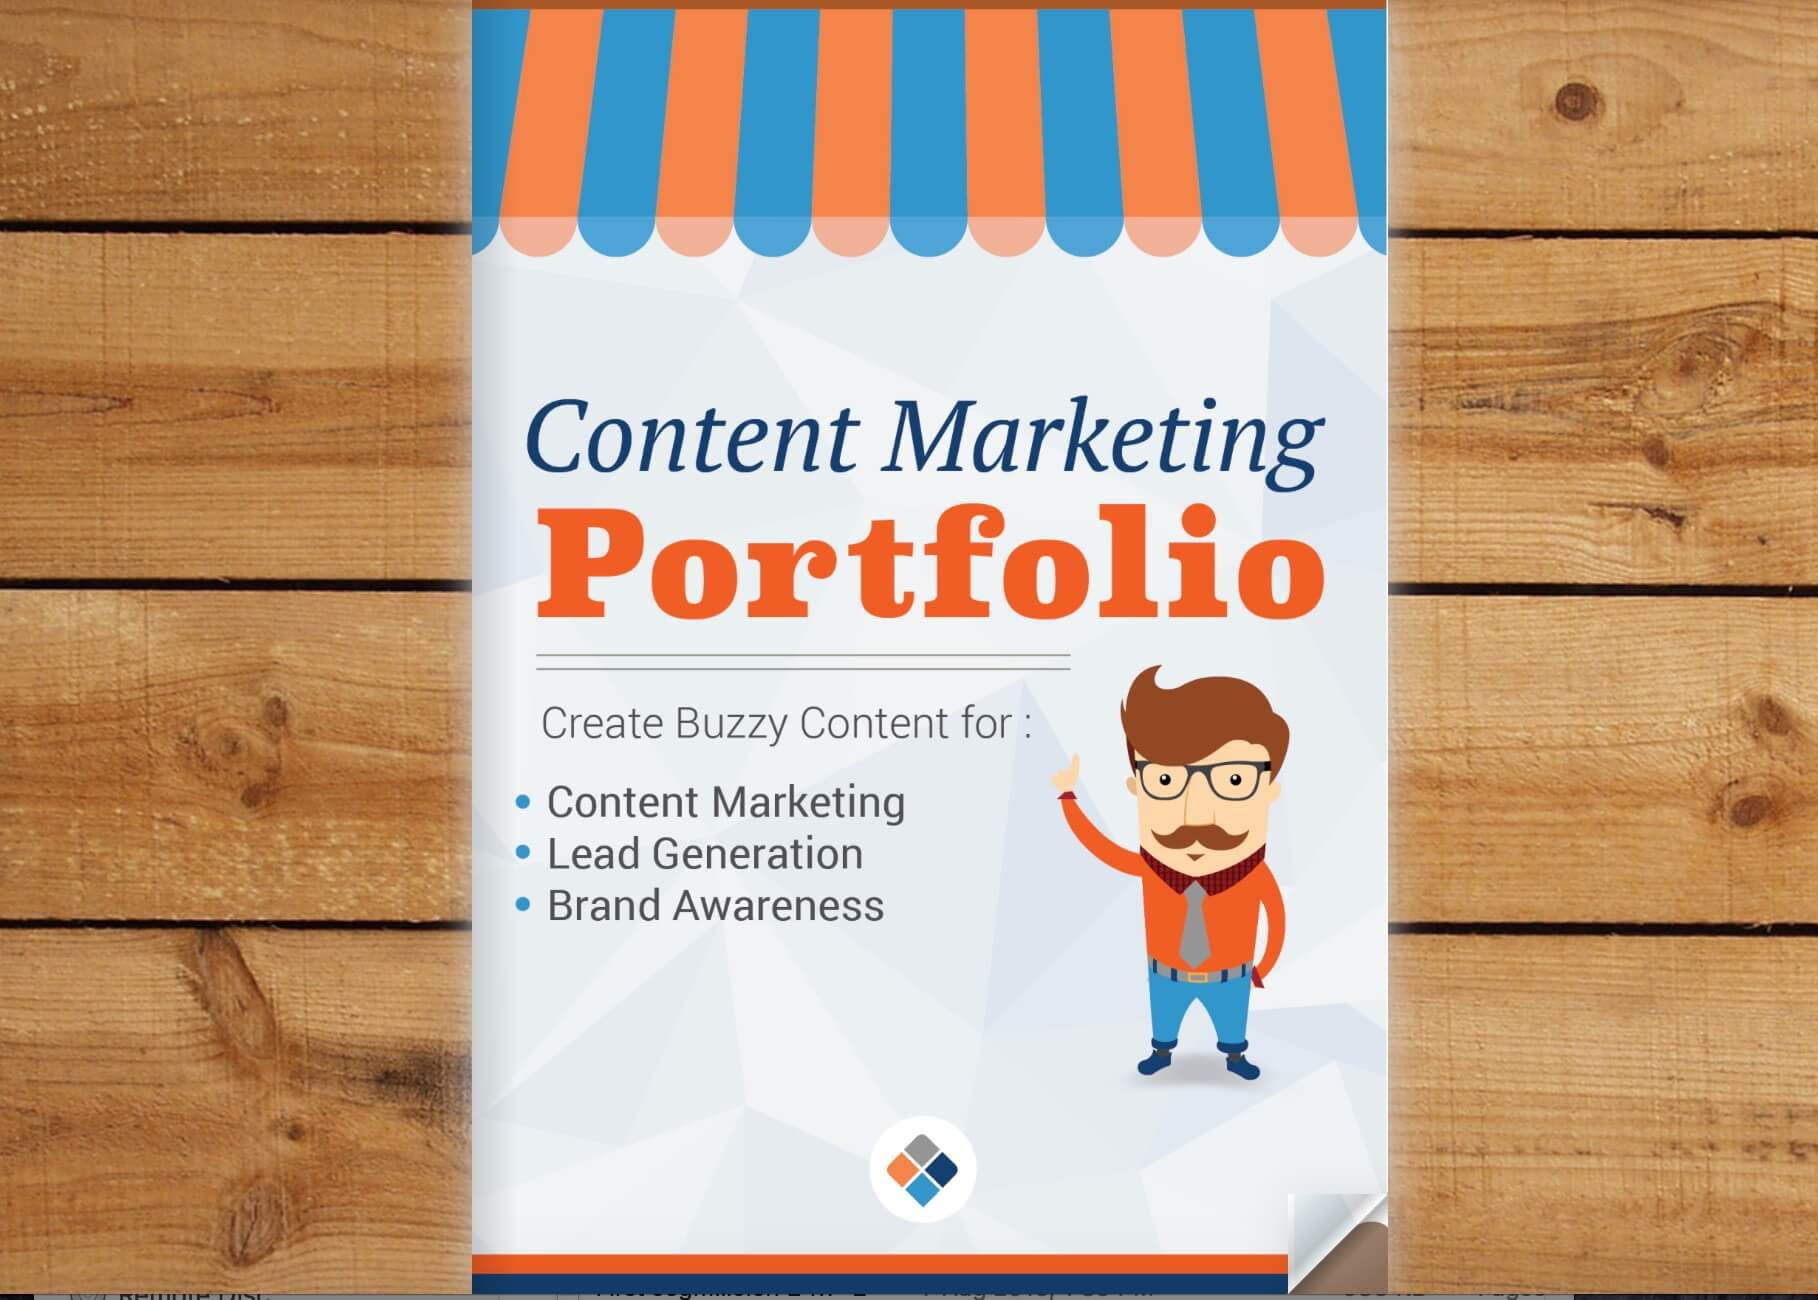 Content Marketing Portforlio